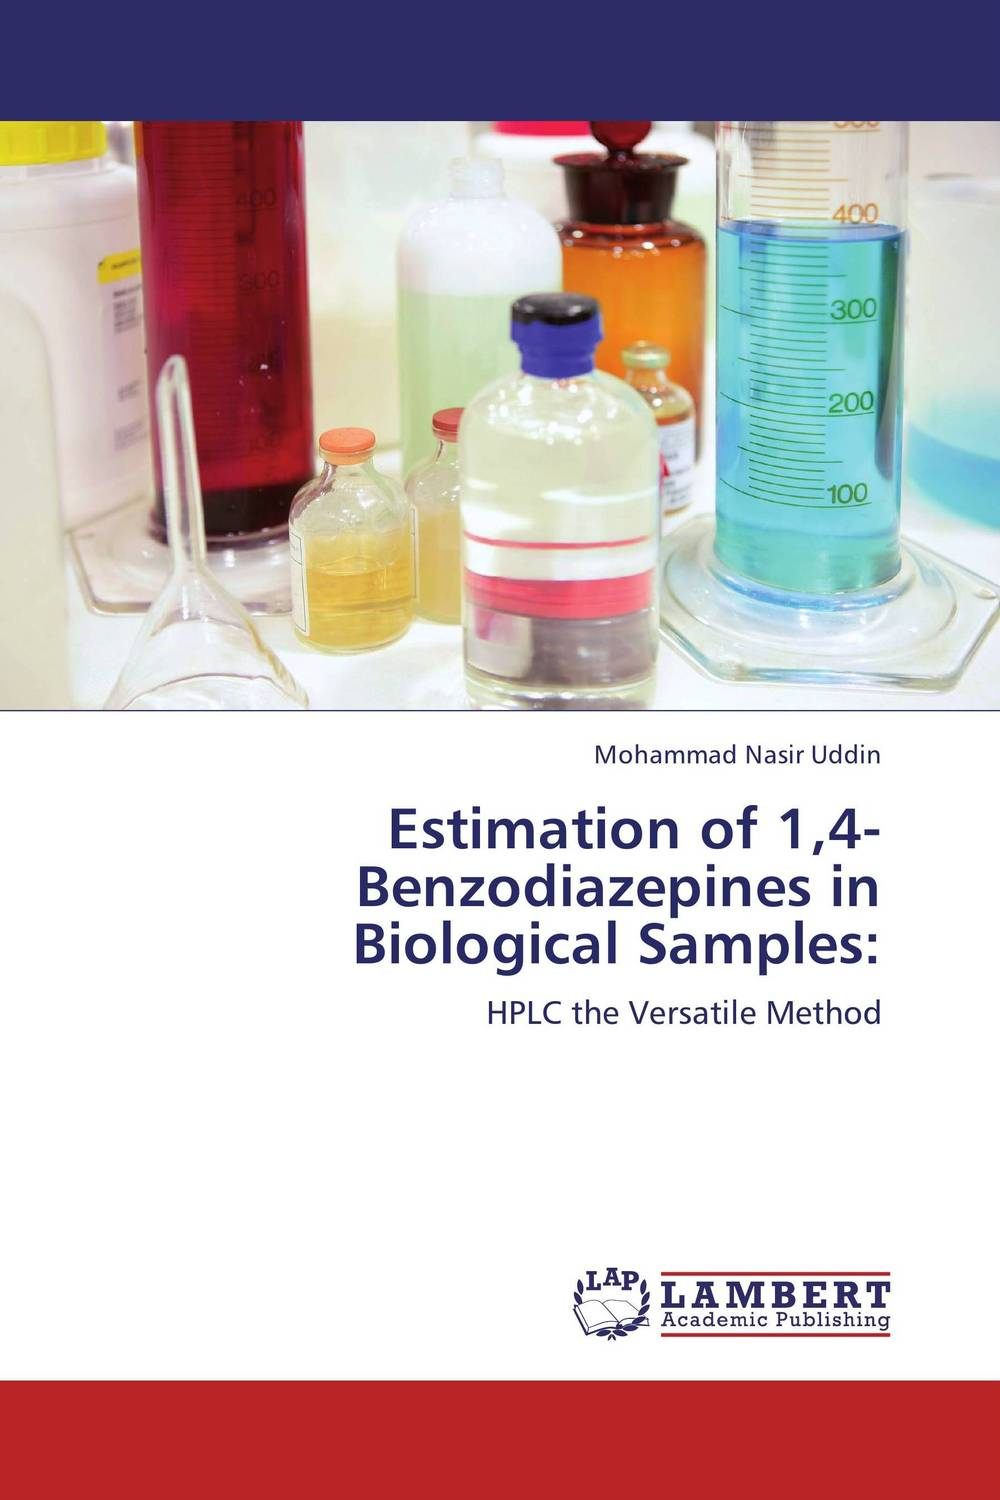 Estimation of 1,4-Benzodiazepines in Biological Samples: 5 bottles 500pills diabetes treatment radix rehmannia extract effects on central nervous system and cardiovascular function